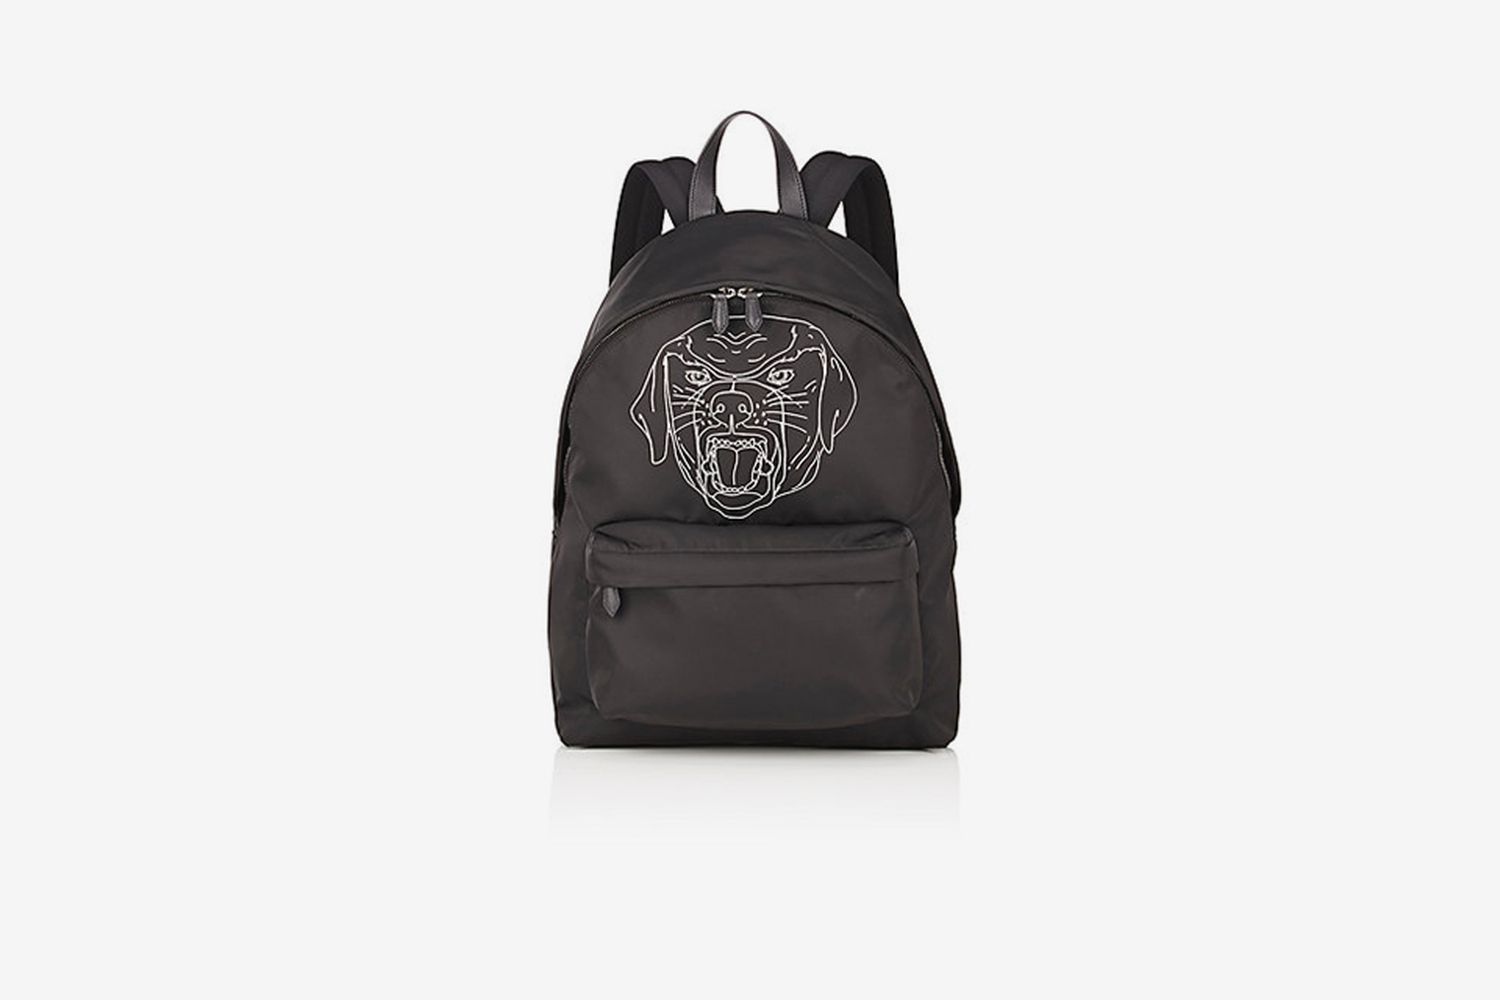 Stenciled-Rottweiler Classic Backpack